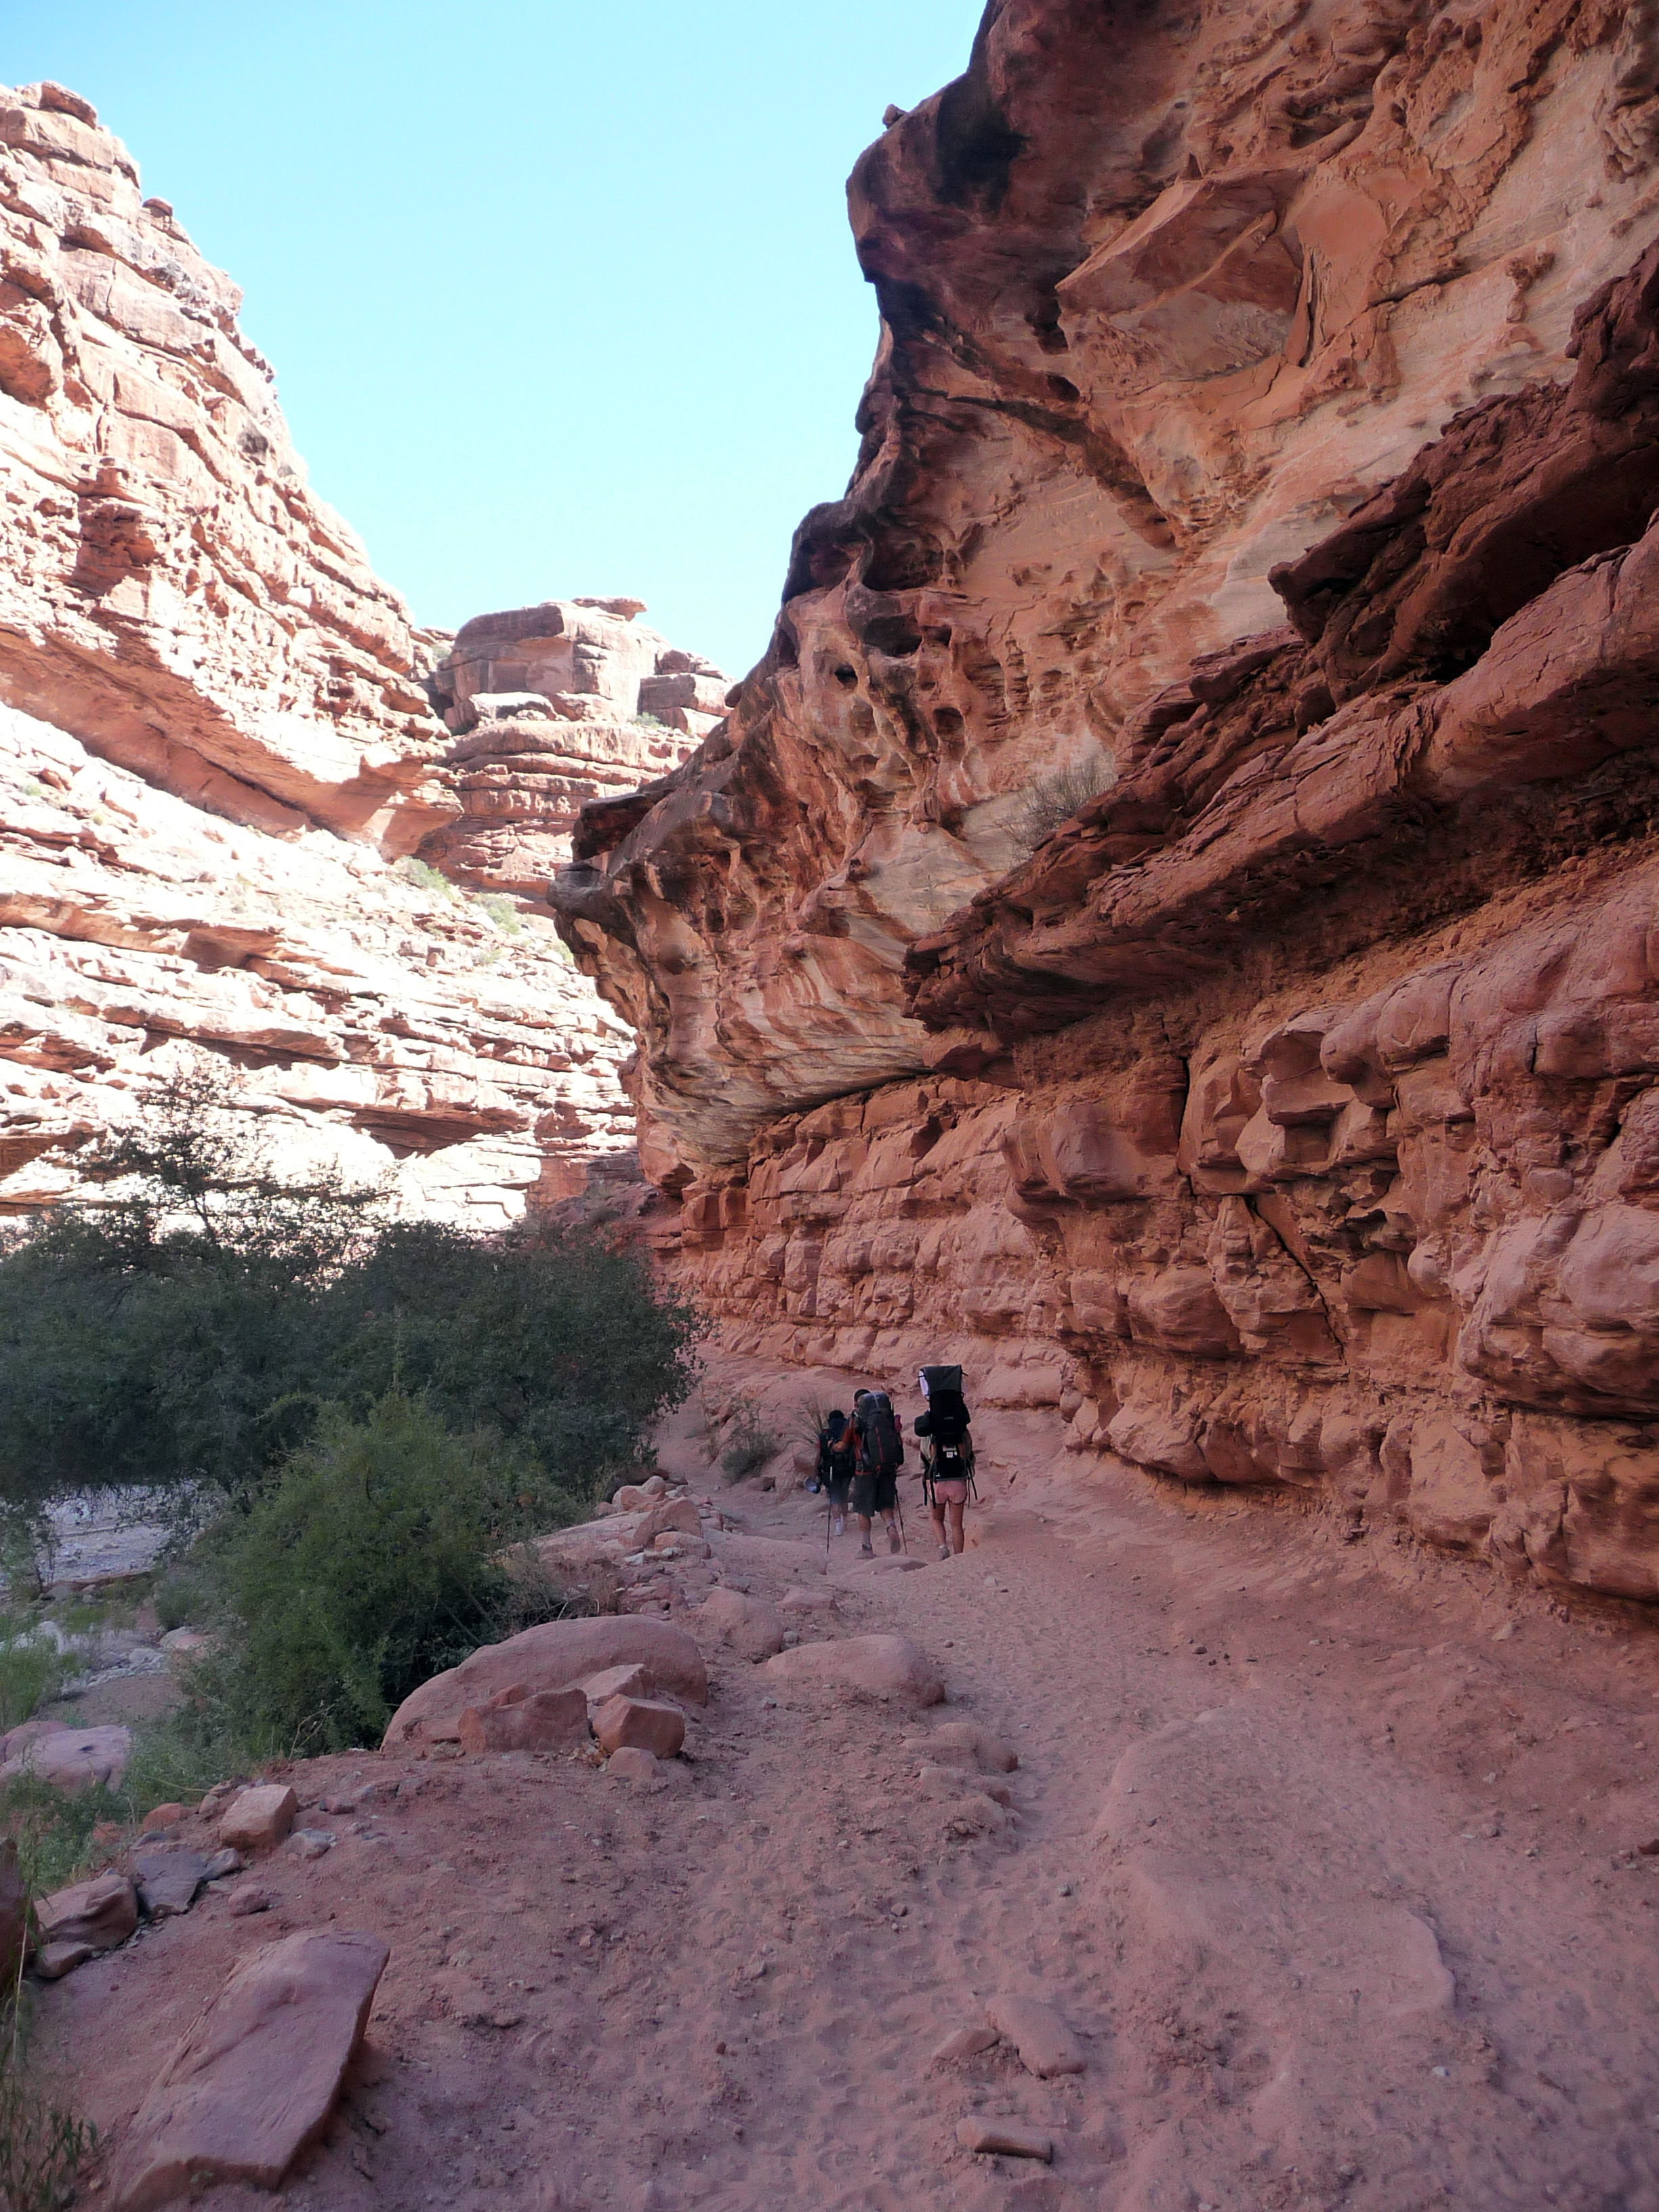 Walking through The Grand Canyon